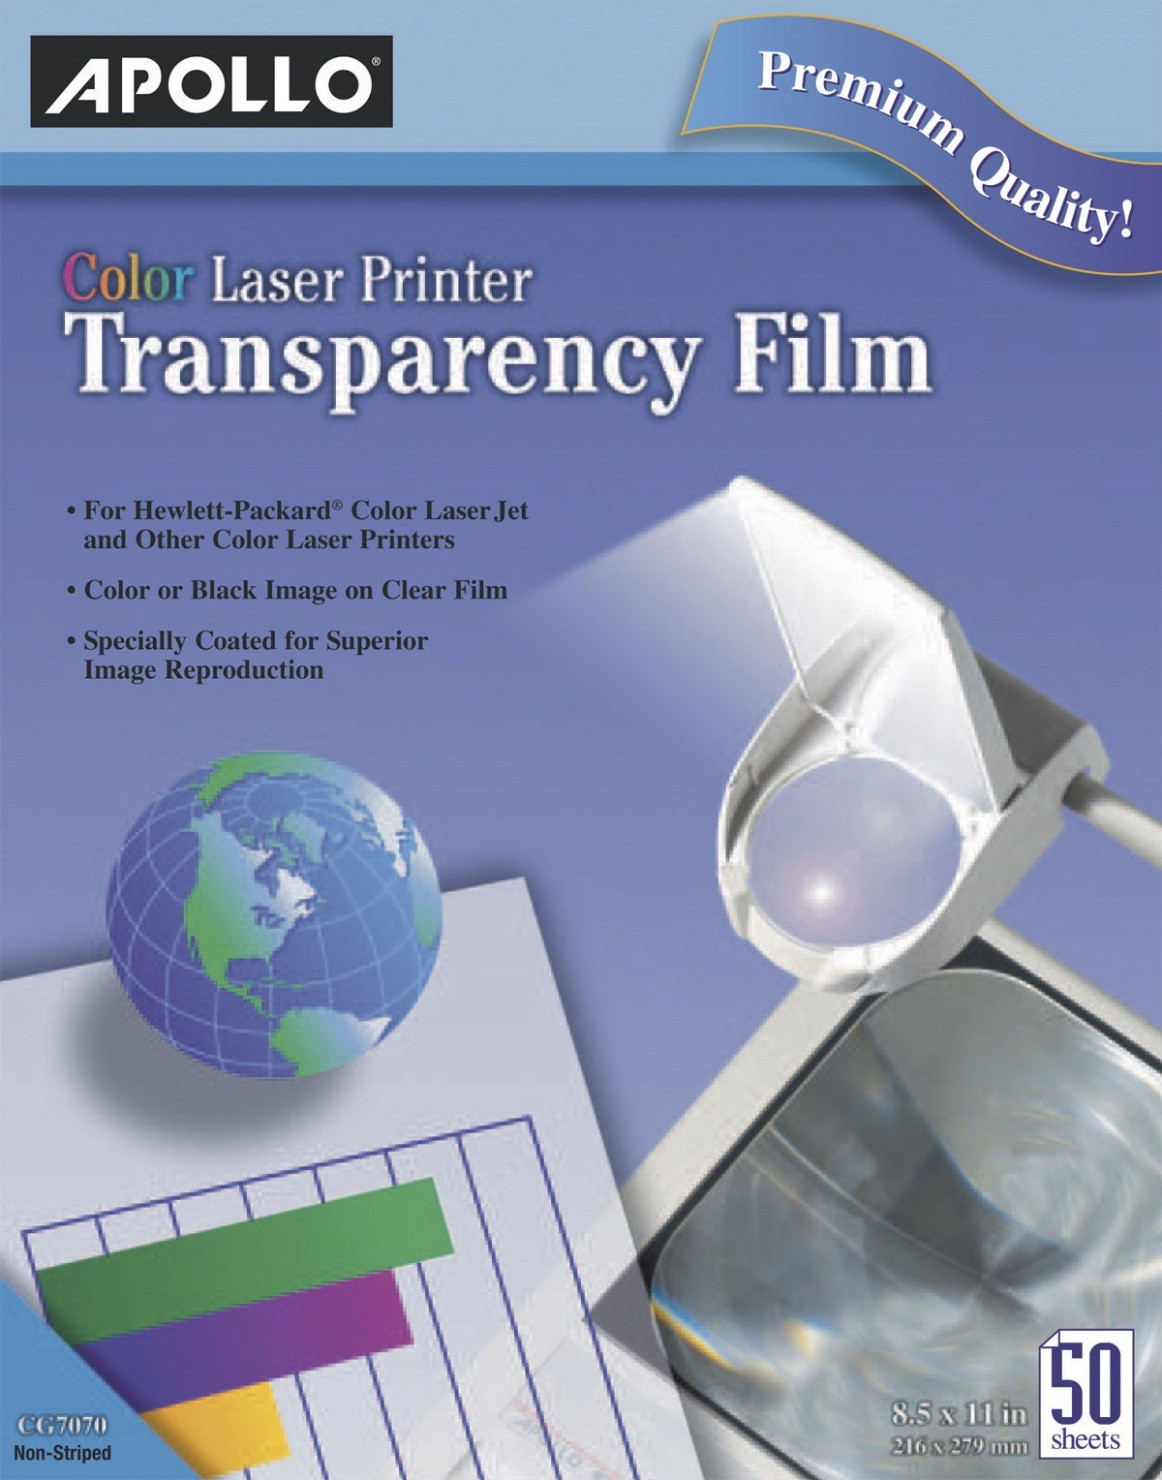 Color Laser Transparency Film, 8-1/2 X 11, Clear, 50 Sheets Per Box